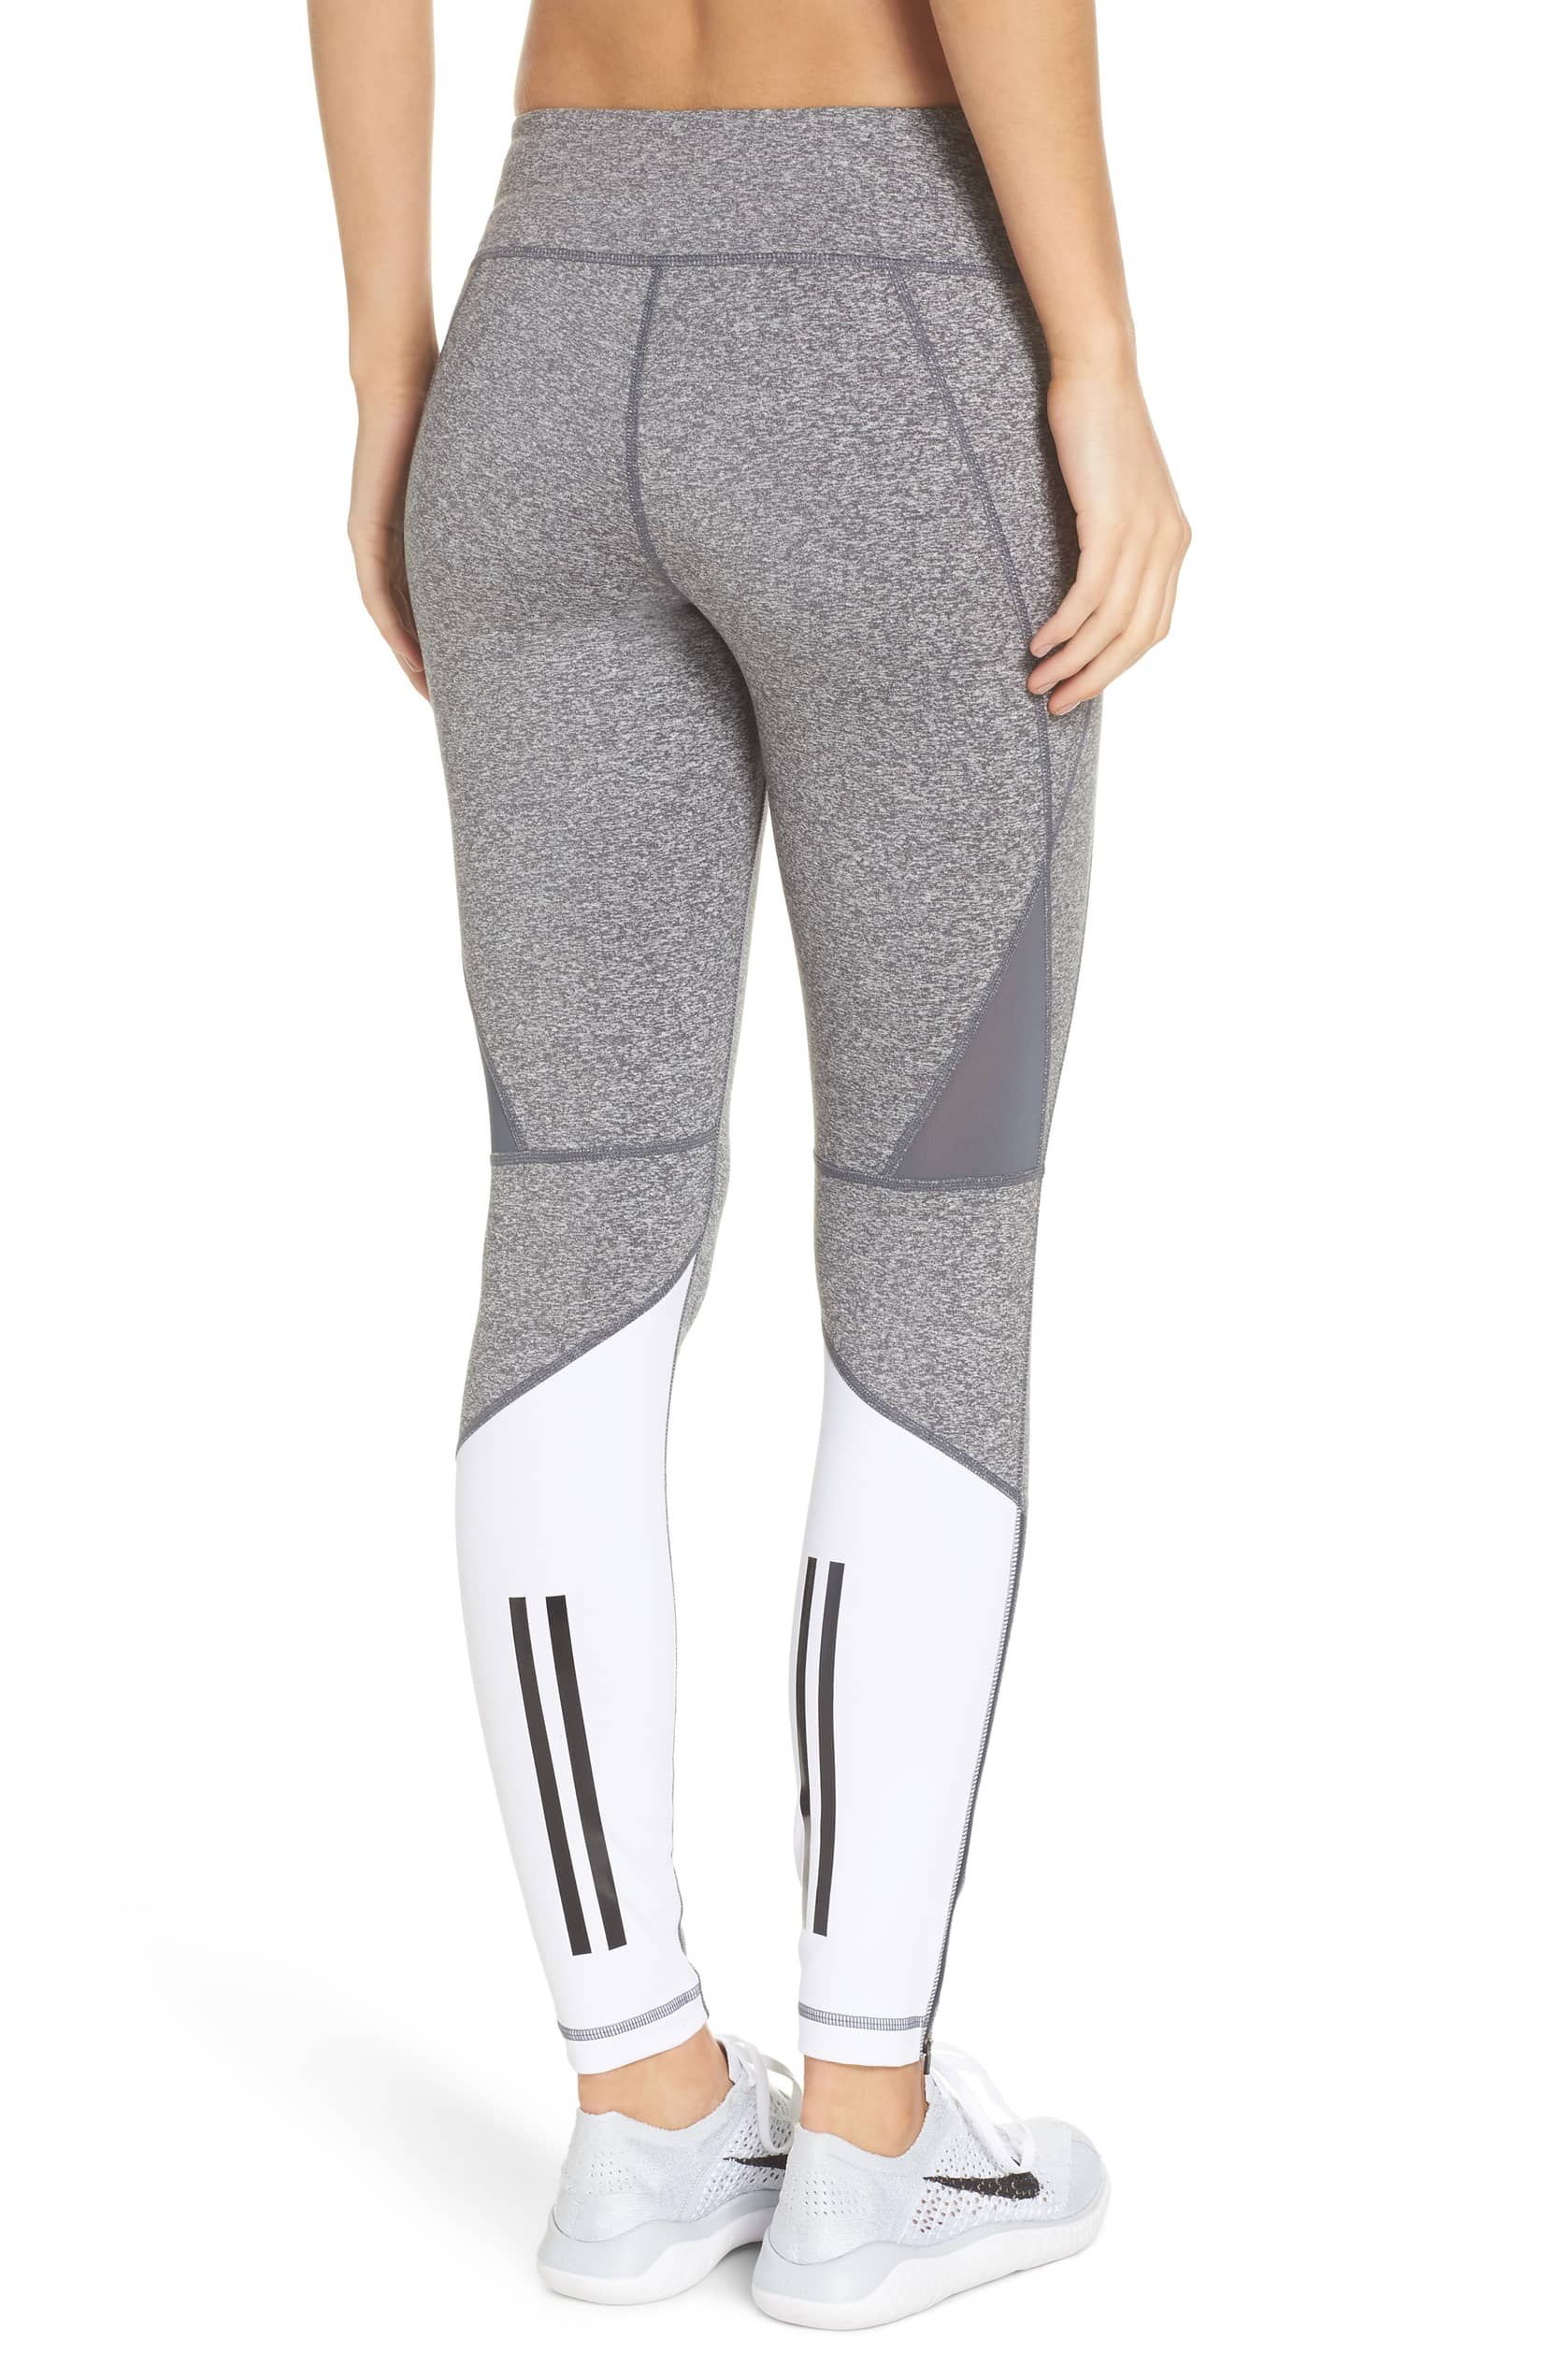 ed6ffdc33eaf1 Stay Comfy and Cool in These Zella Leggings on Sale at Nordstrom